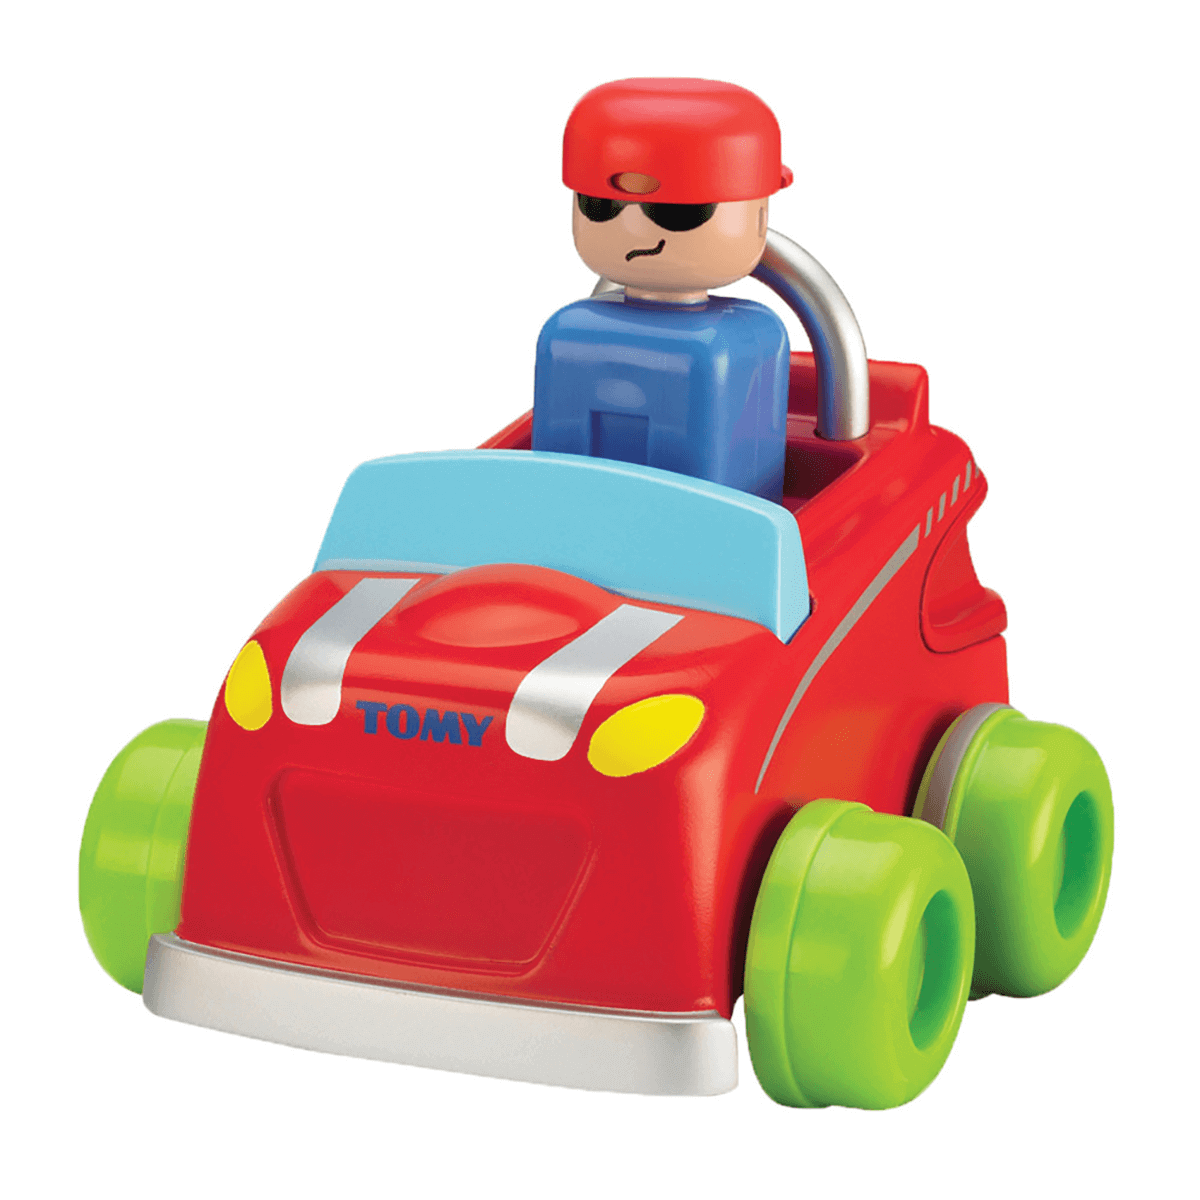 Tomy Toomies Push And Go Vehicle - Car from Early Learning Center